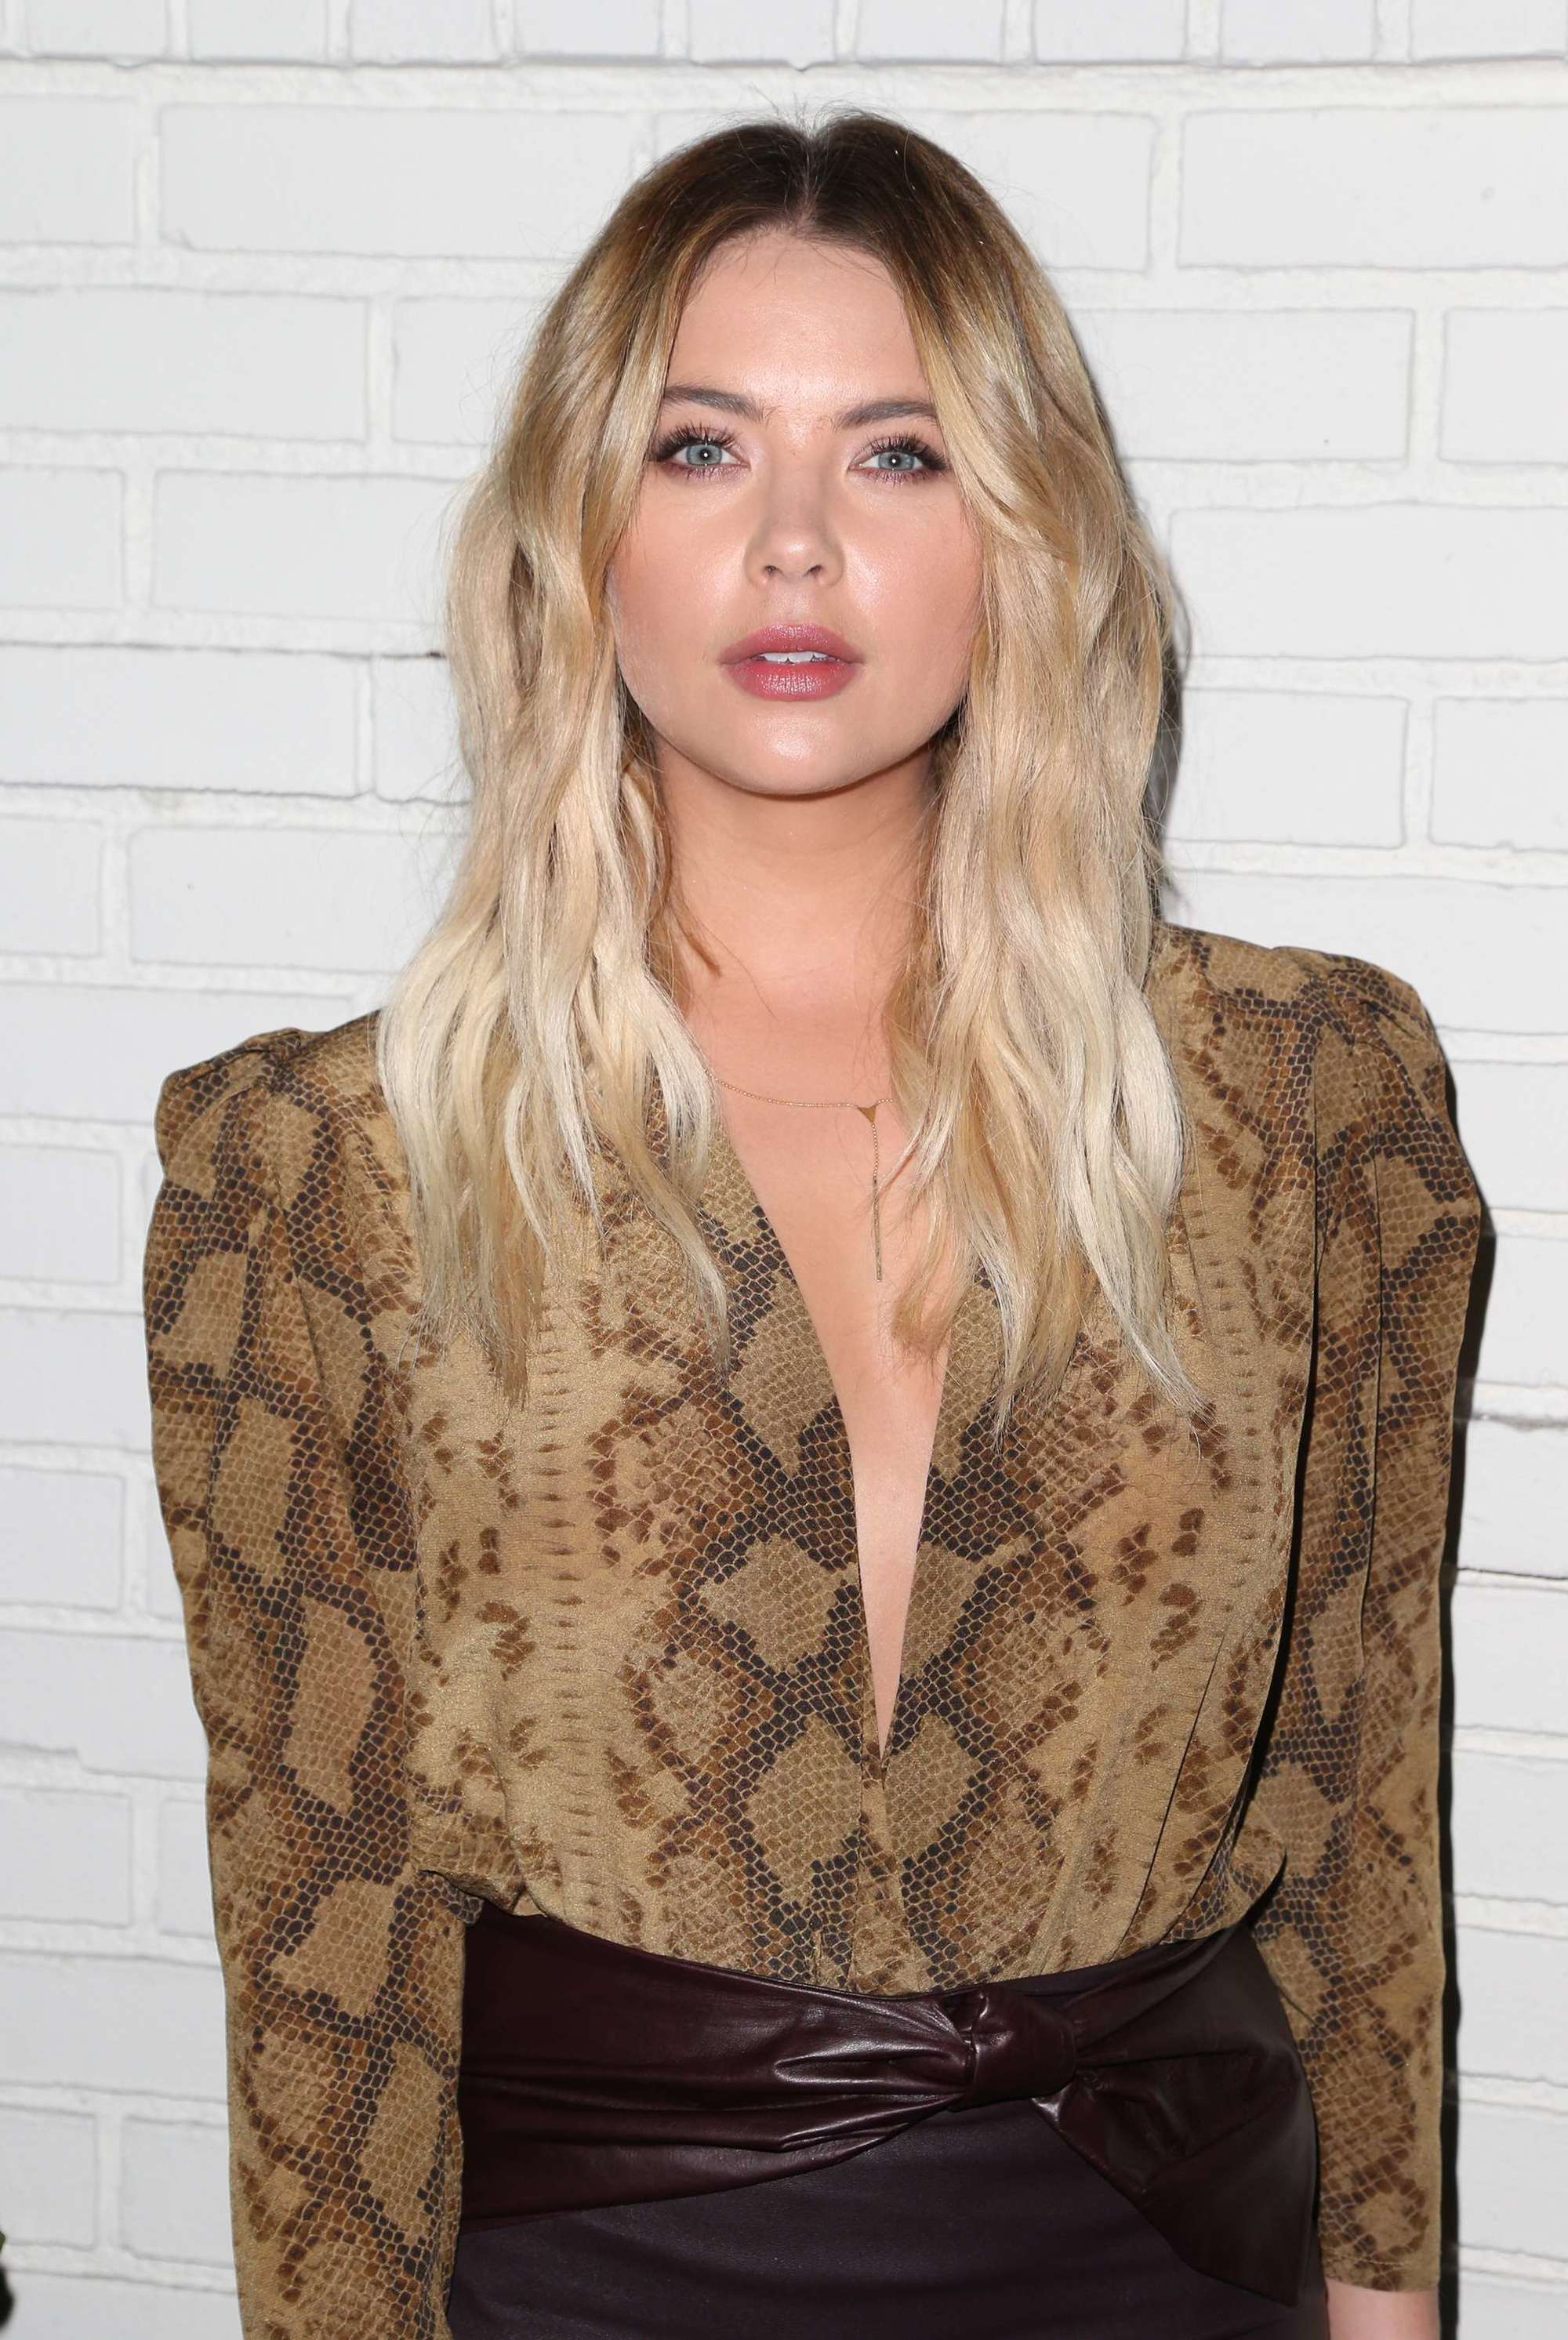 Flat iron hairstyles: Ashley Benson long blonde hair with dark roots and wavy finish.